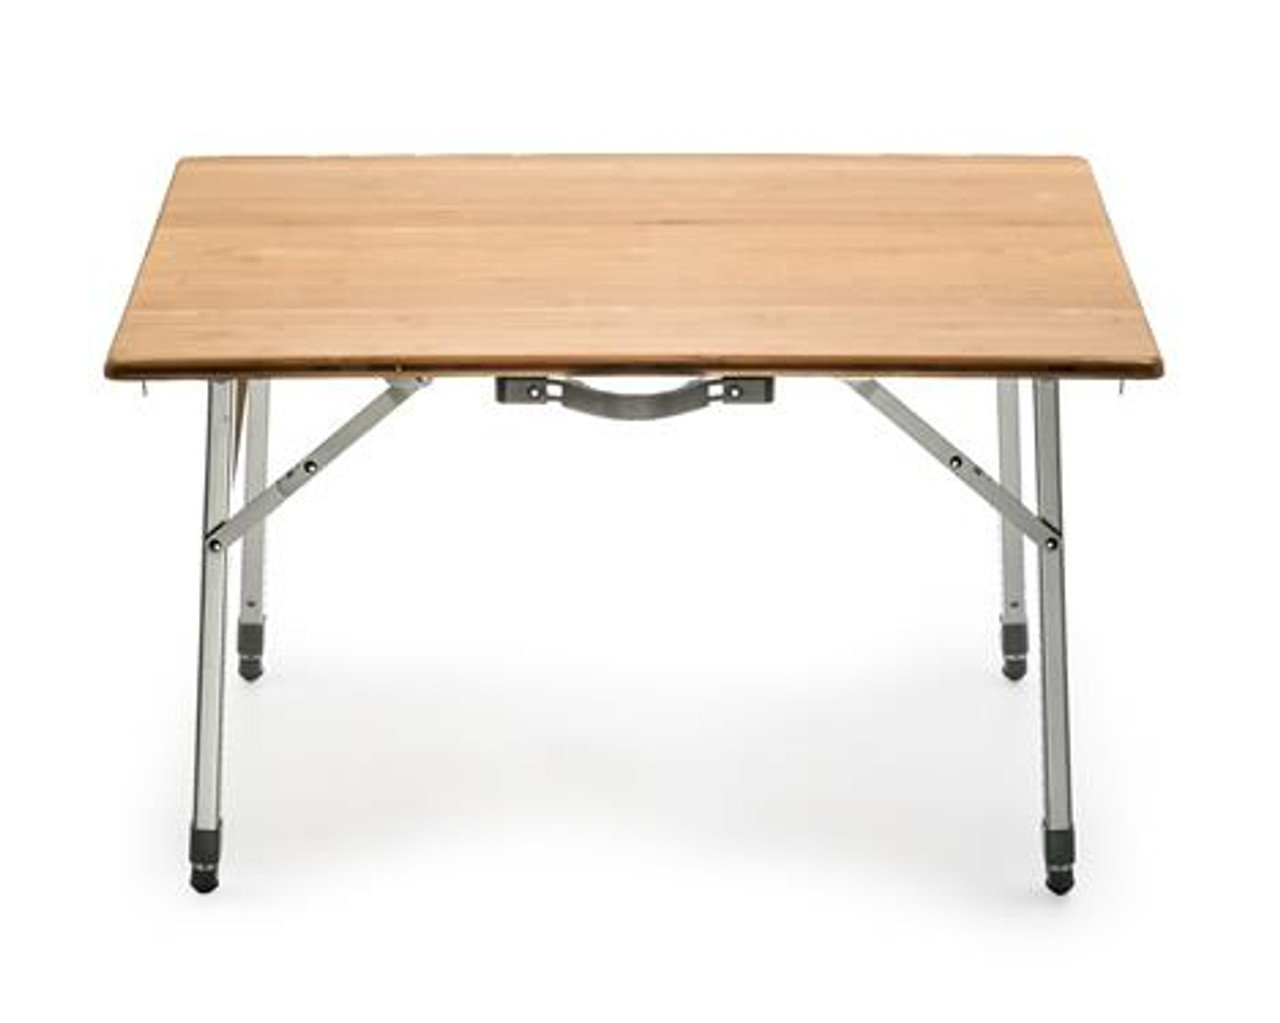 Bamboo Folding Table Adjustable Height